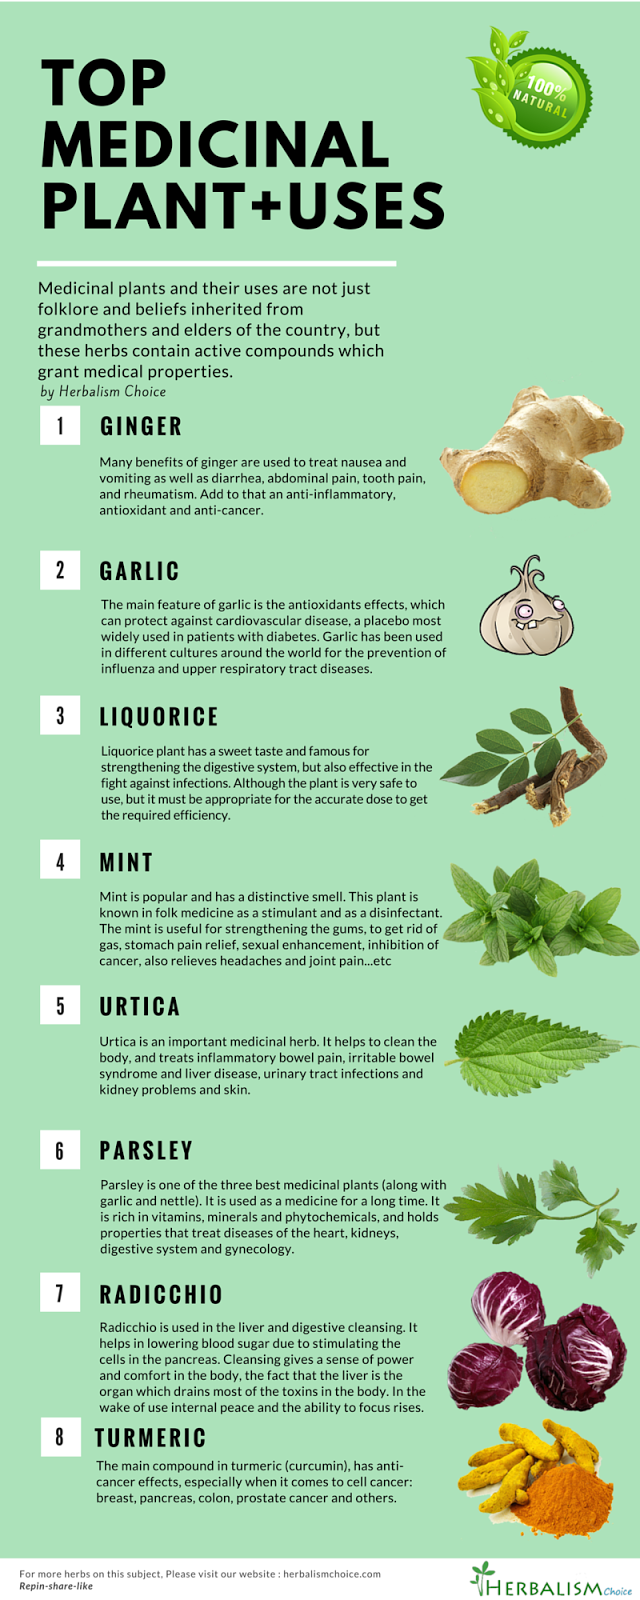 Information on herbs and their uses